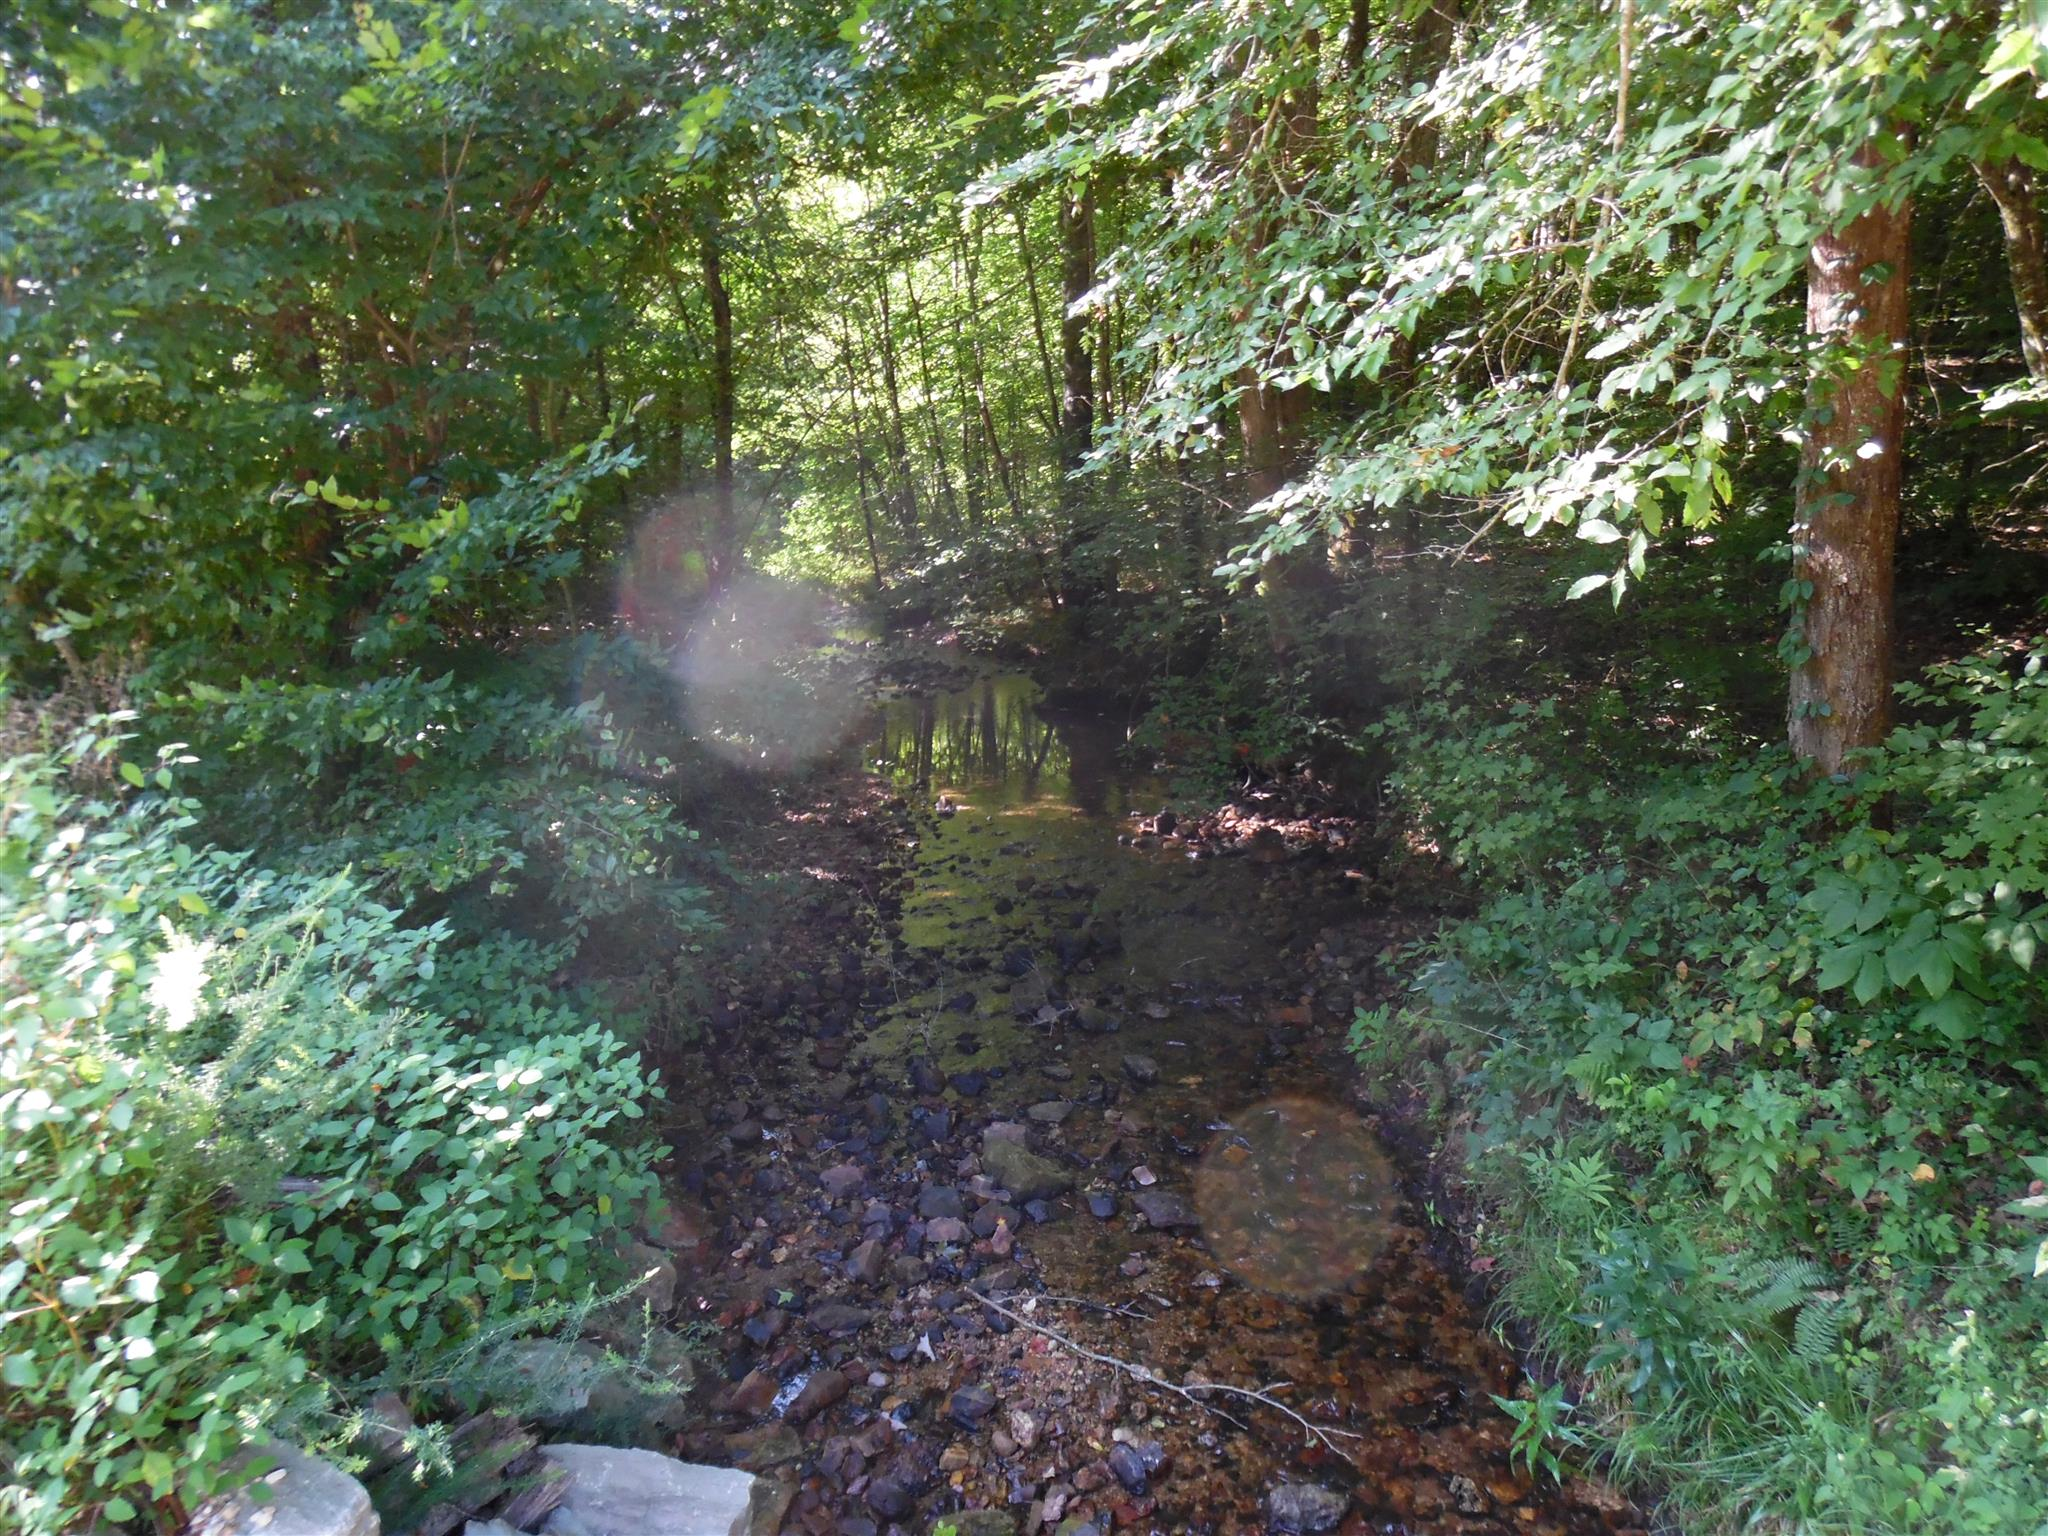 0 WATER FALL CREEK RD Property Photo - Collinwood, TN real estate listing